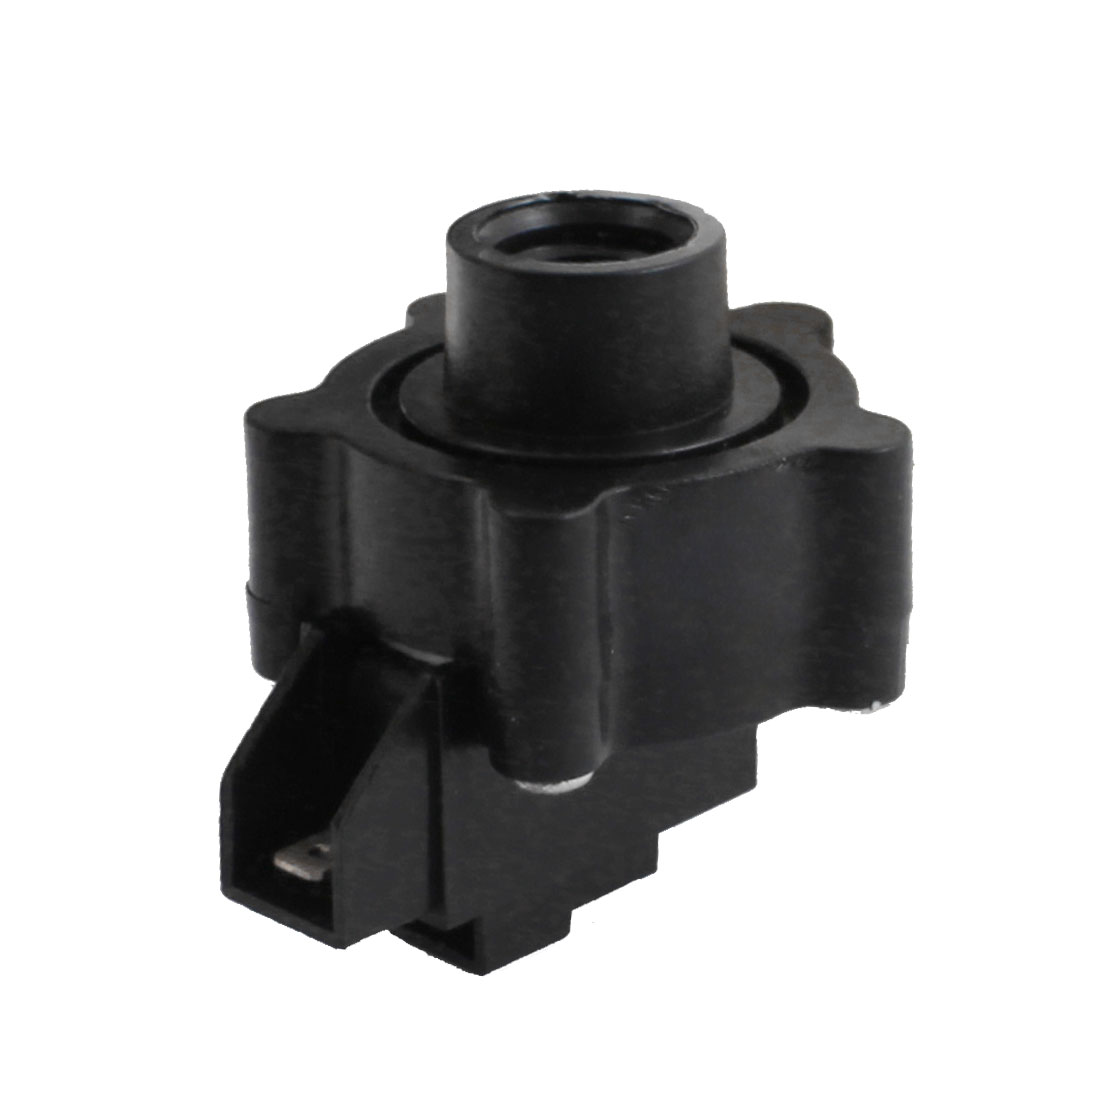 Water Treatment Spare Parts Fittings Low Pressure Switch DC 24V 0-0.8mpa